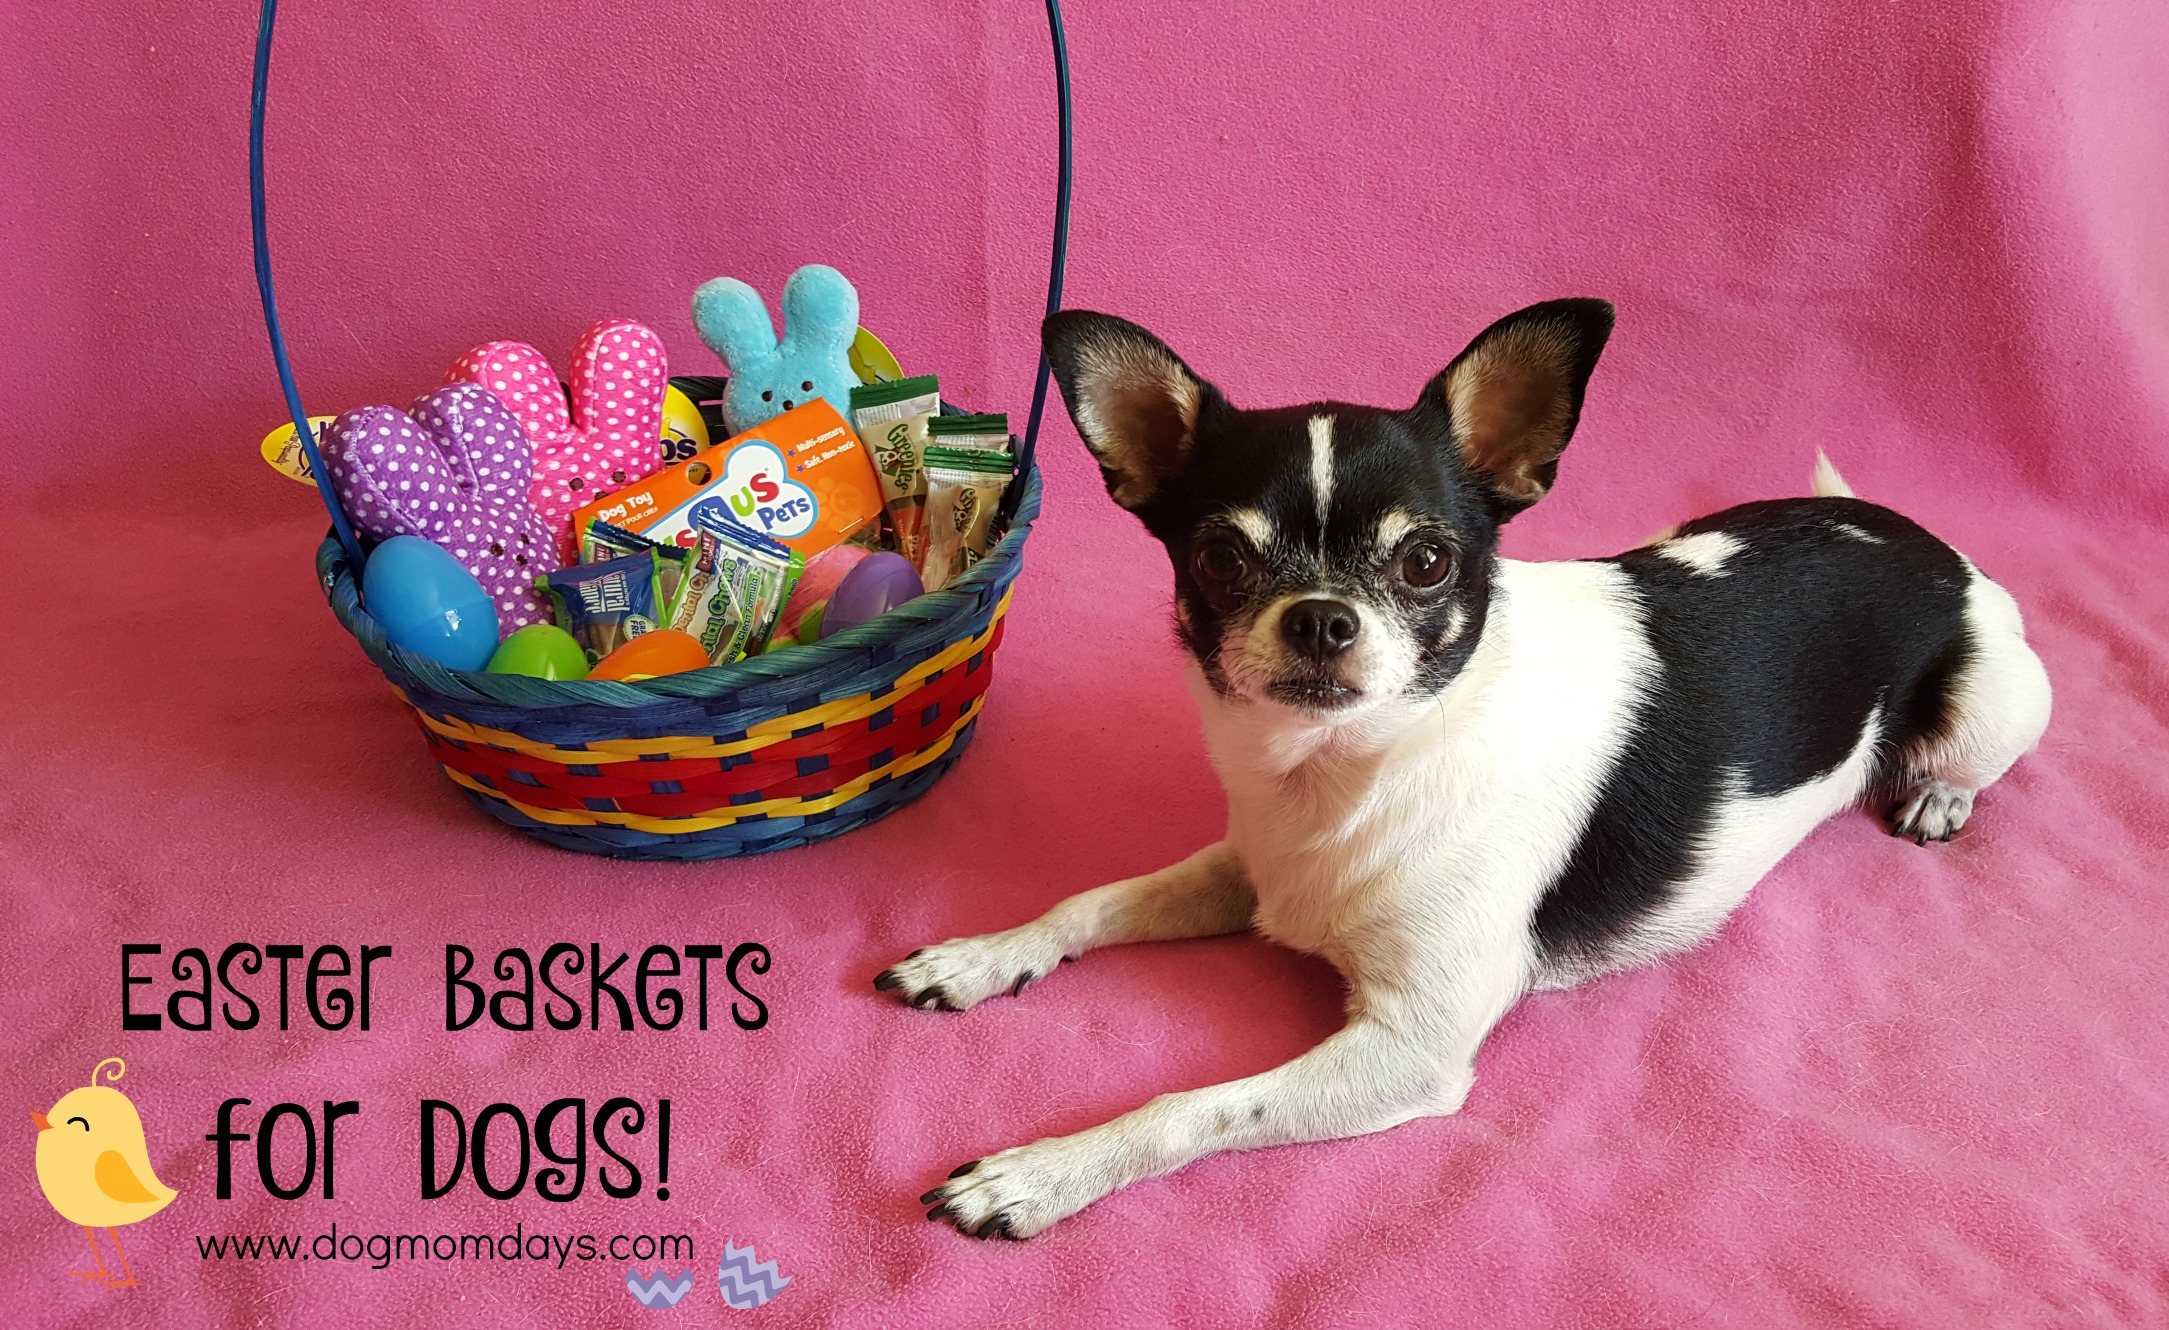 How to put together an Easter basket for your dog